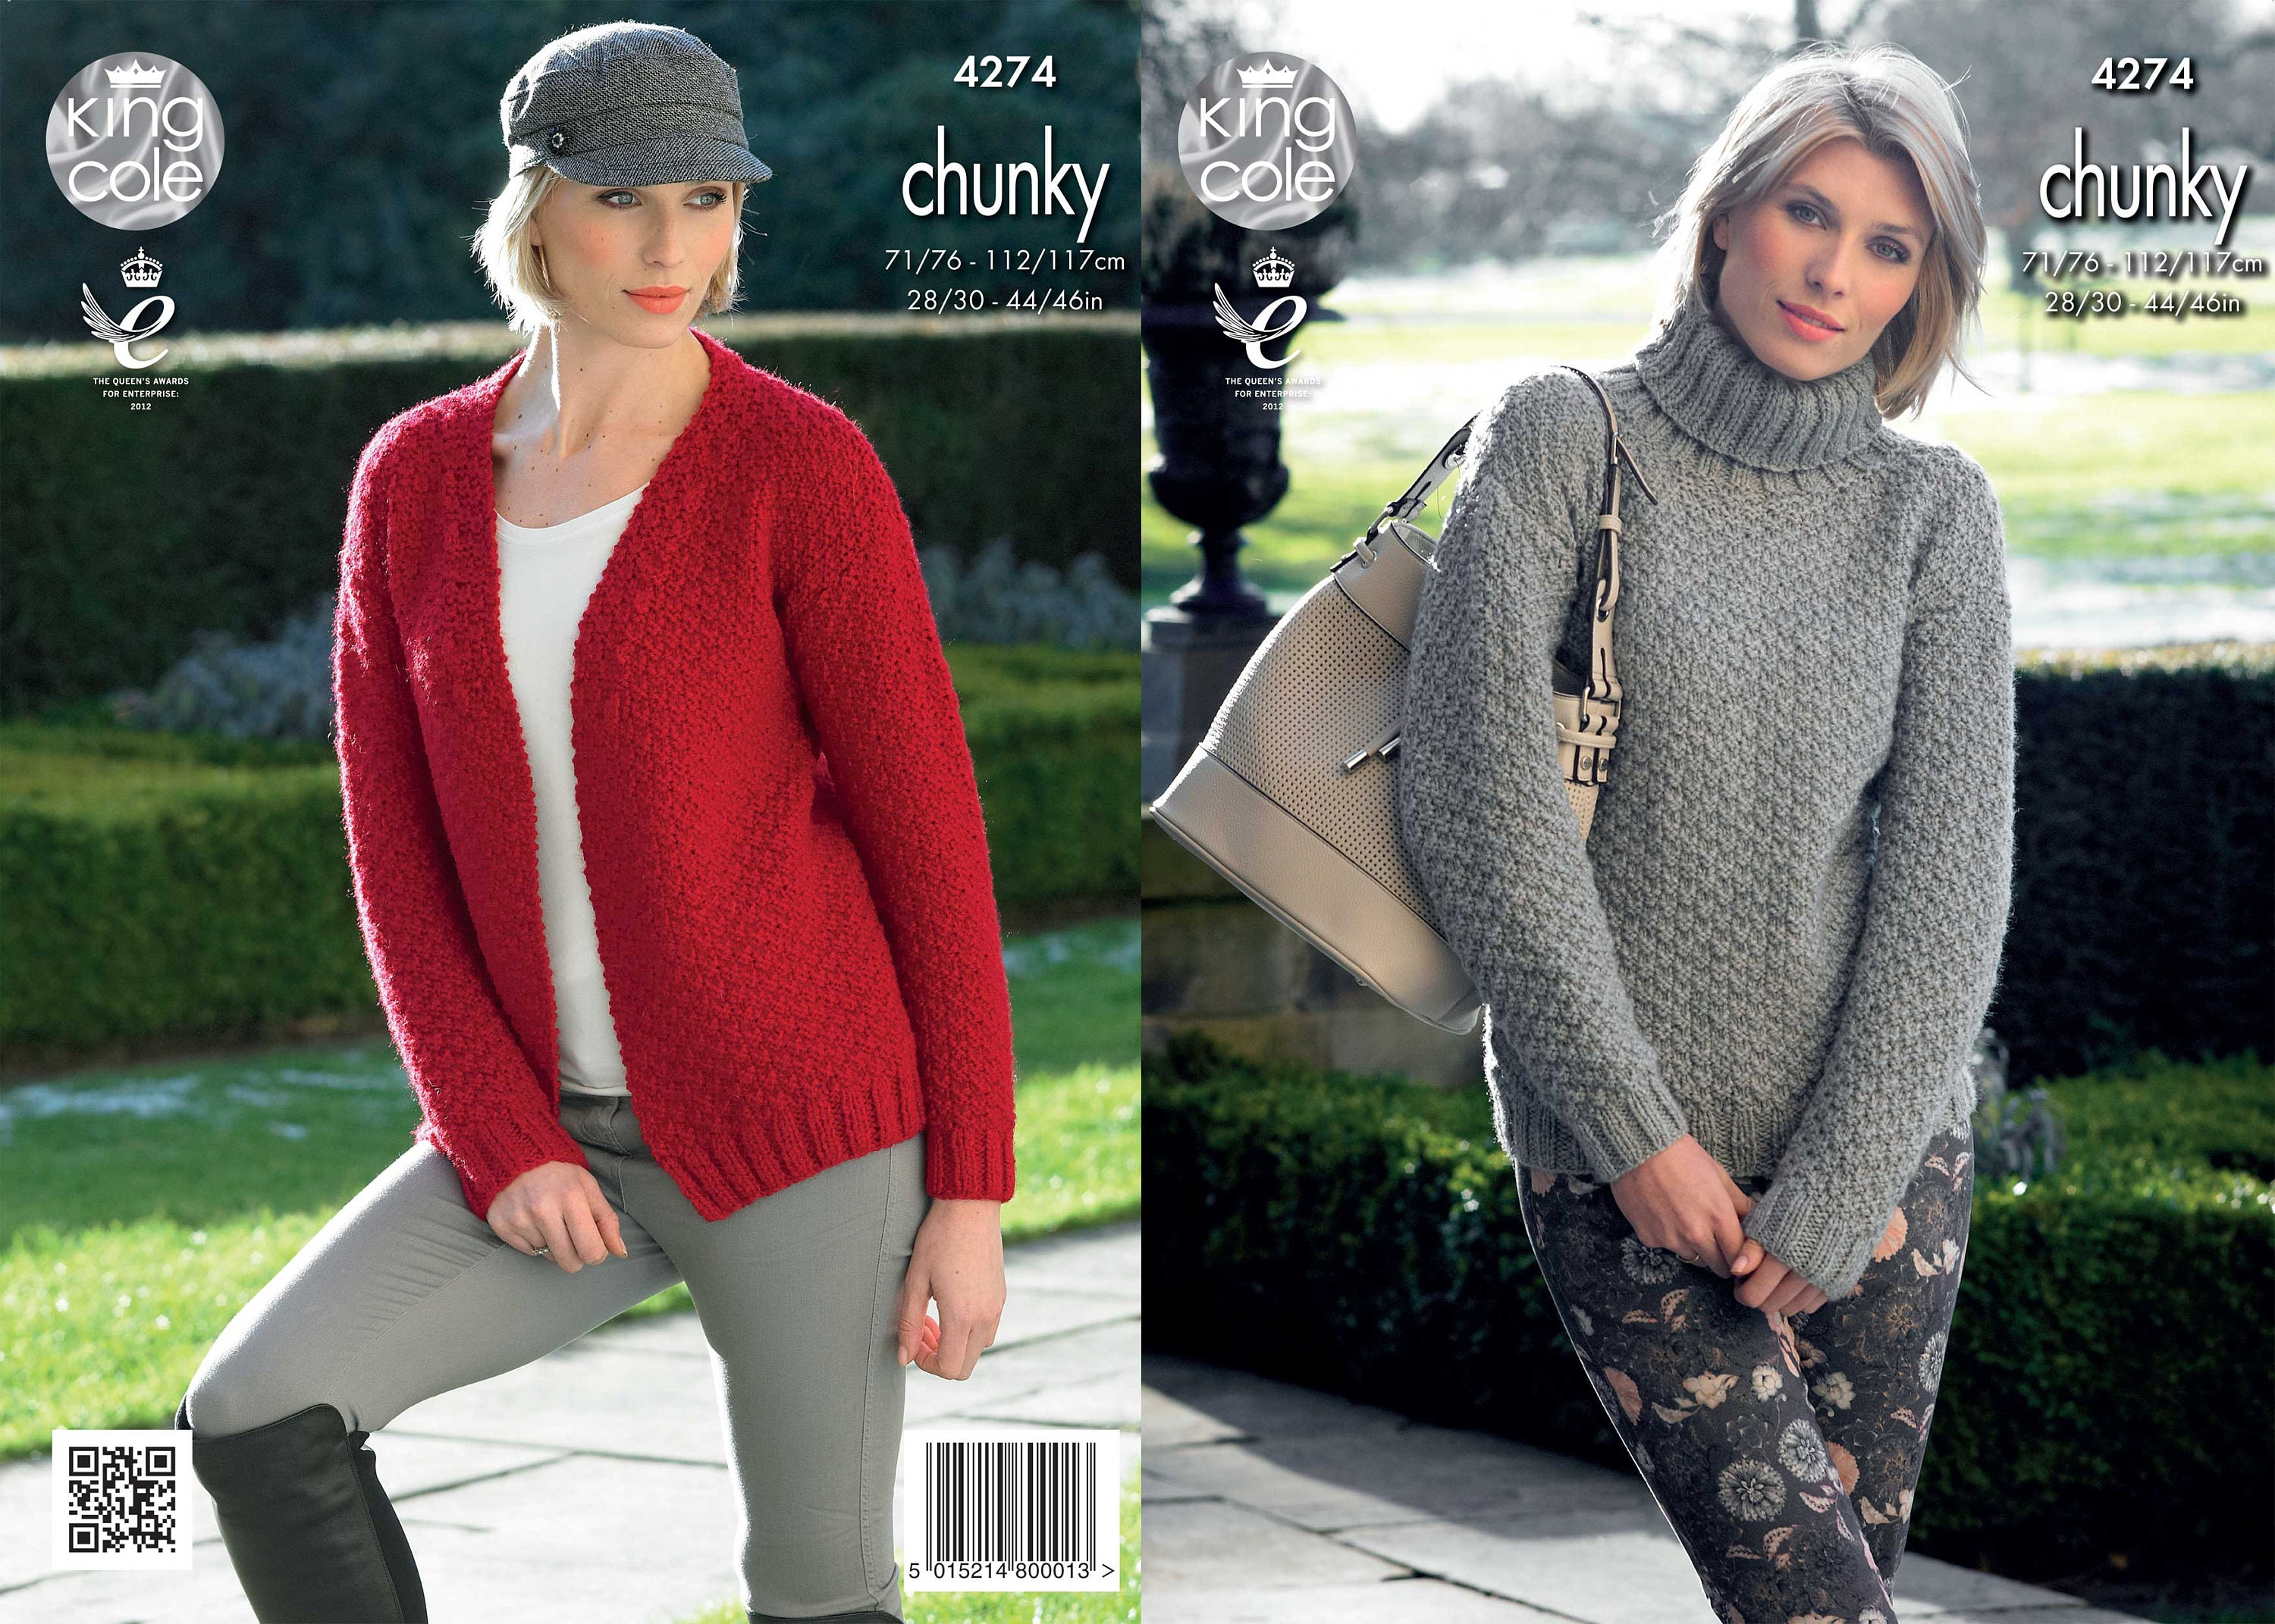 ff458eec5 Sweater and V-neck Cardigan Knitted with New Magnum Chunky